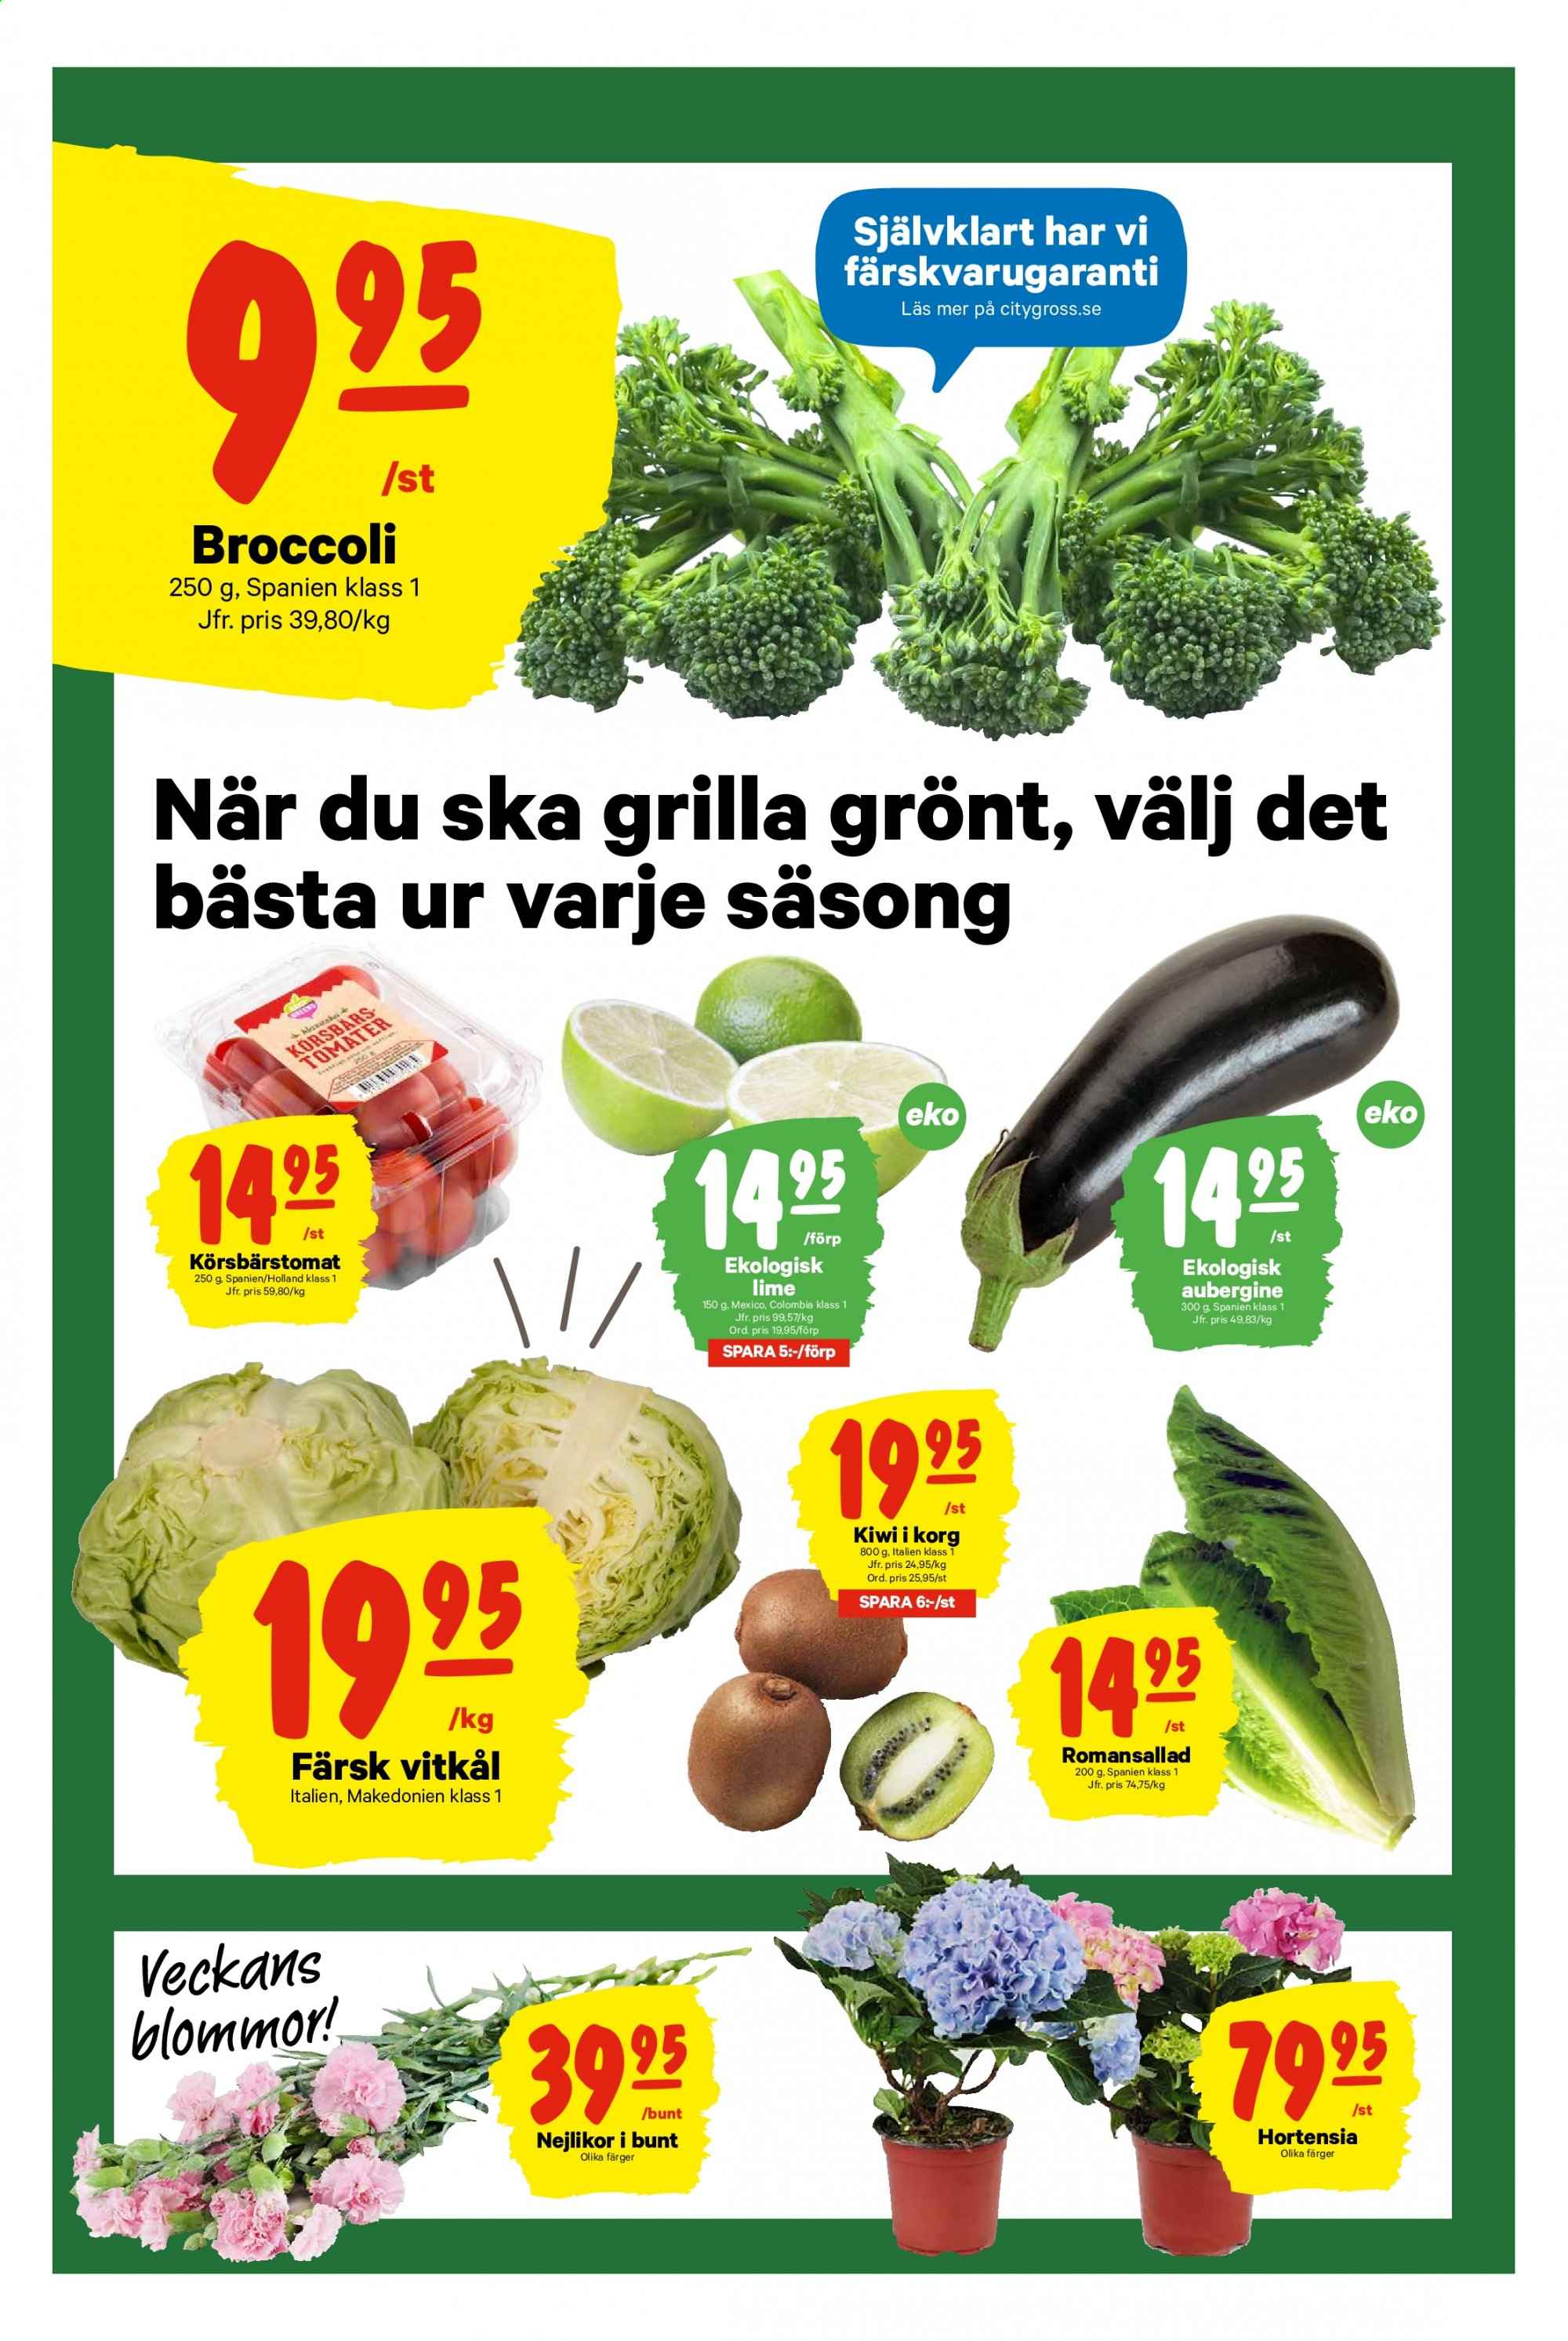 City Gross reklamblad - 29/4 2019 - 5/5 2019. Sida 4.